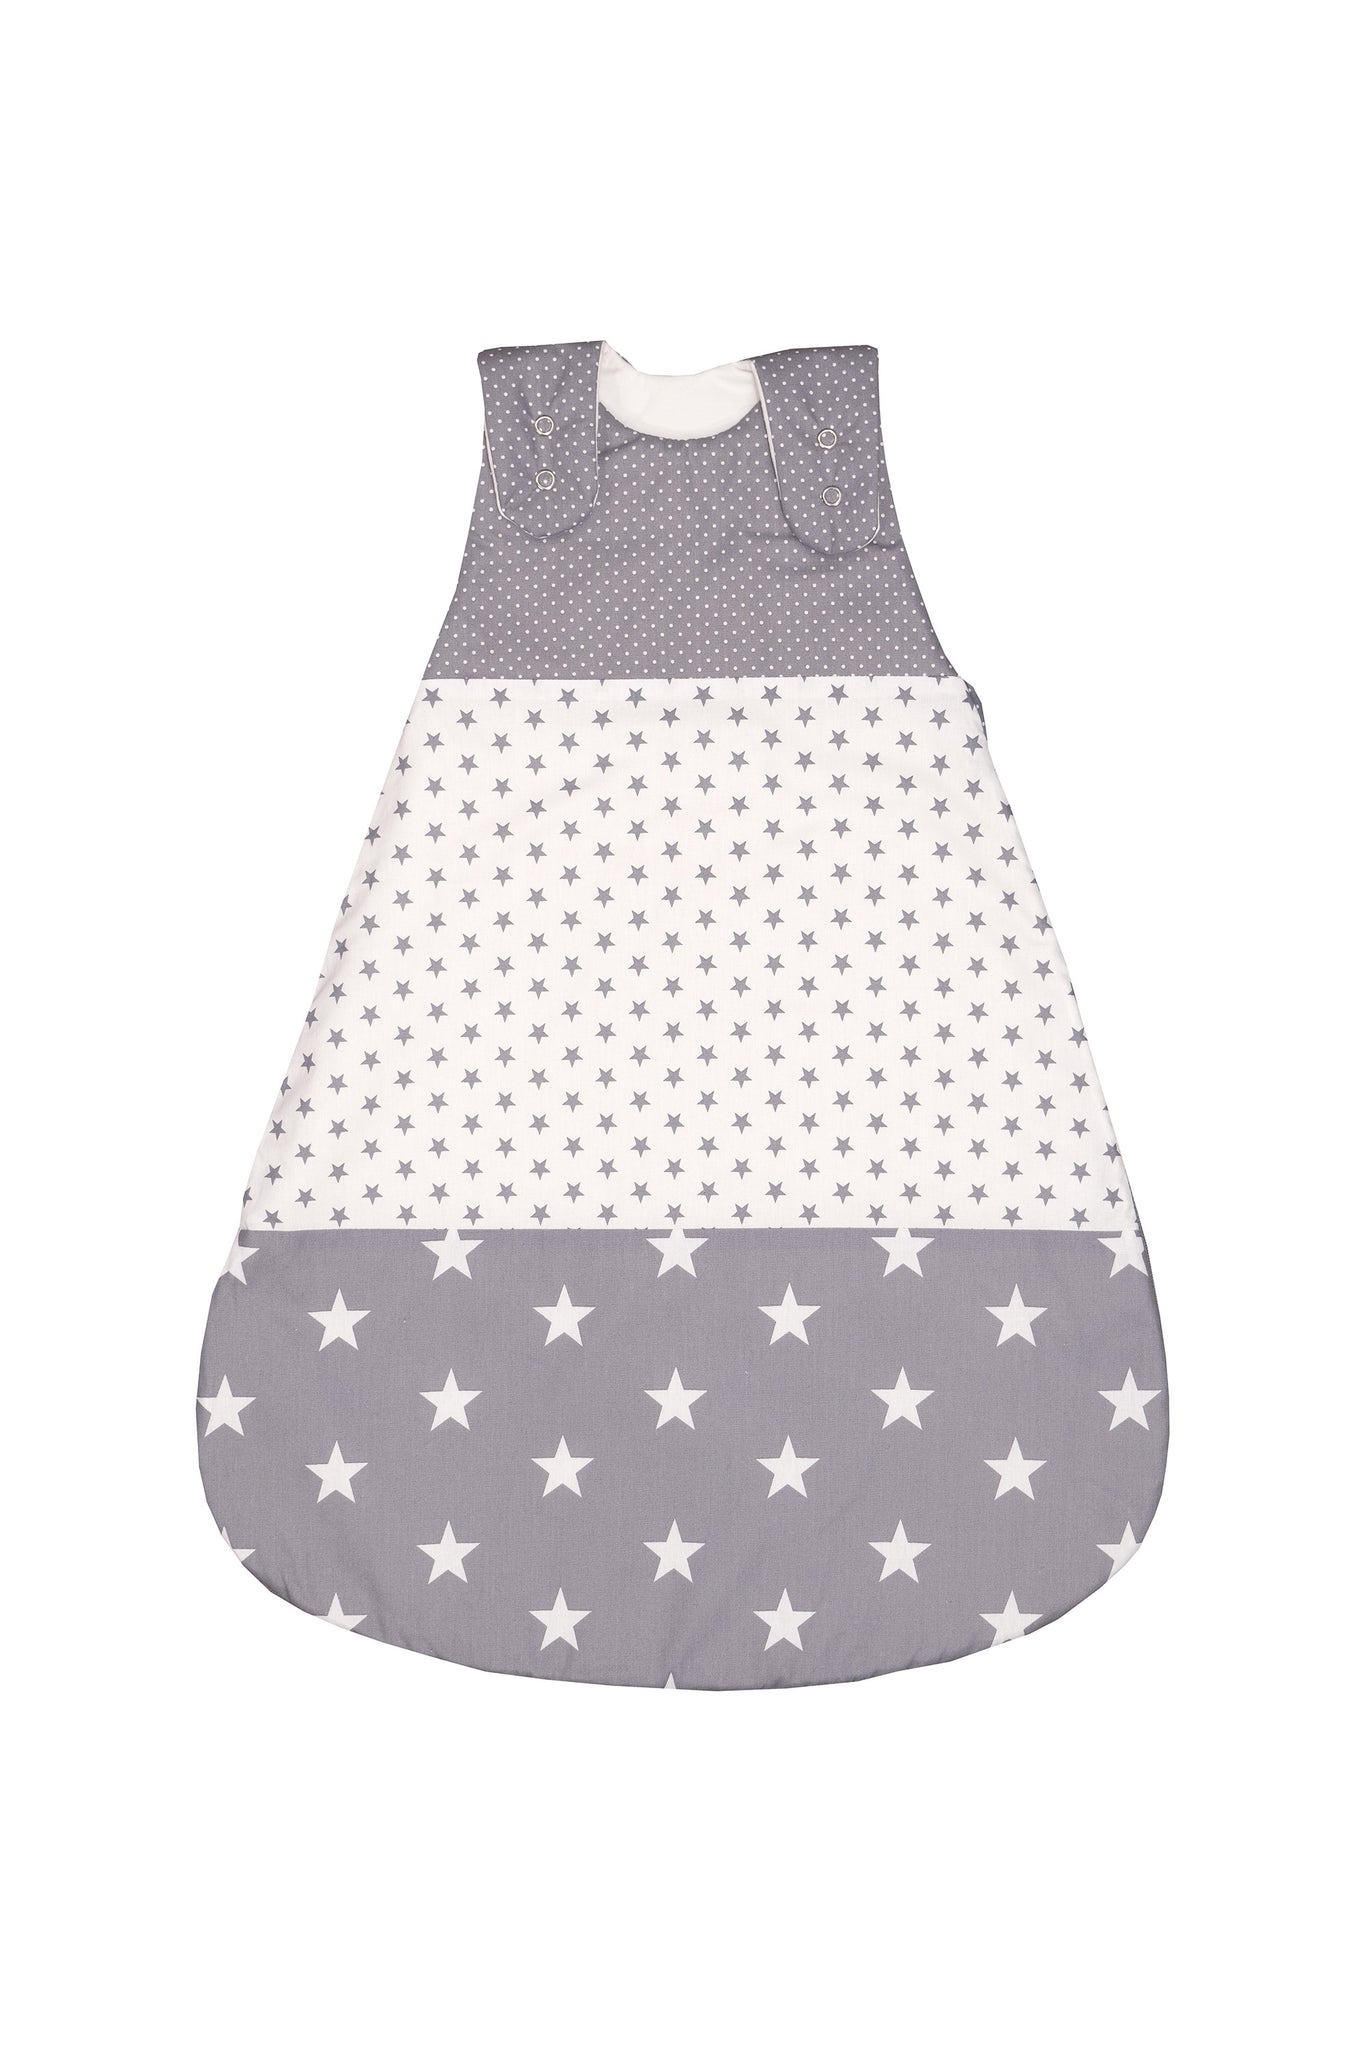 Sleep Sack – Baby Sleeping Bag, Wearable Blanket, Grey with Stars, 6-12 Months